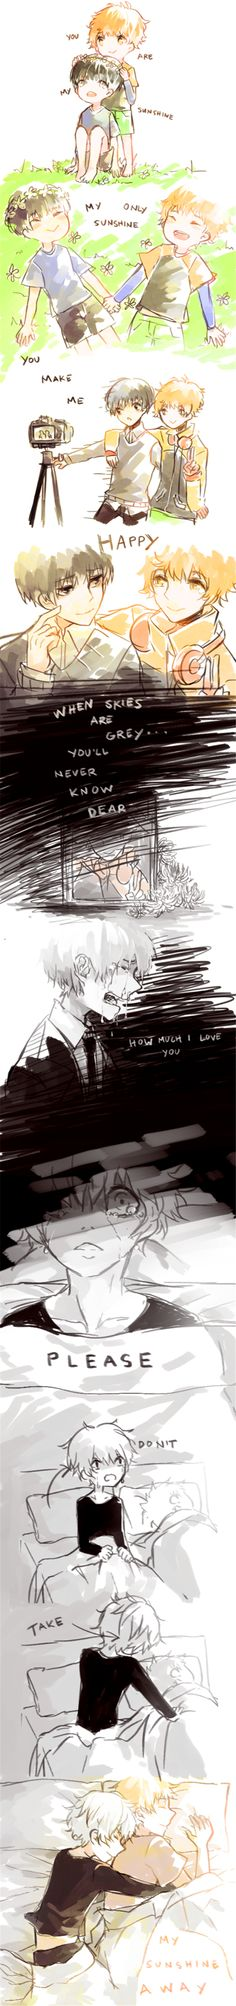 Hide and Kaneki. ^^<<I HAD A MENTAL BREAK DOWN AT SCHOOL!!! THIS IS TOO DEPRESSING!!!